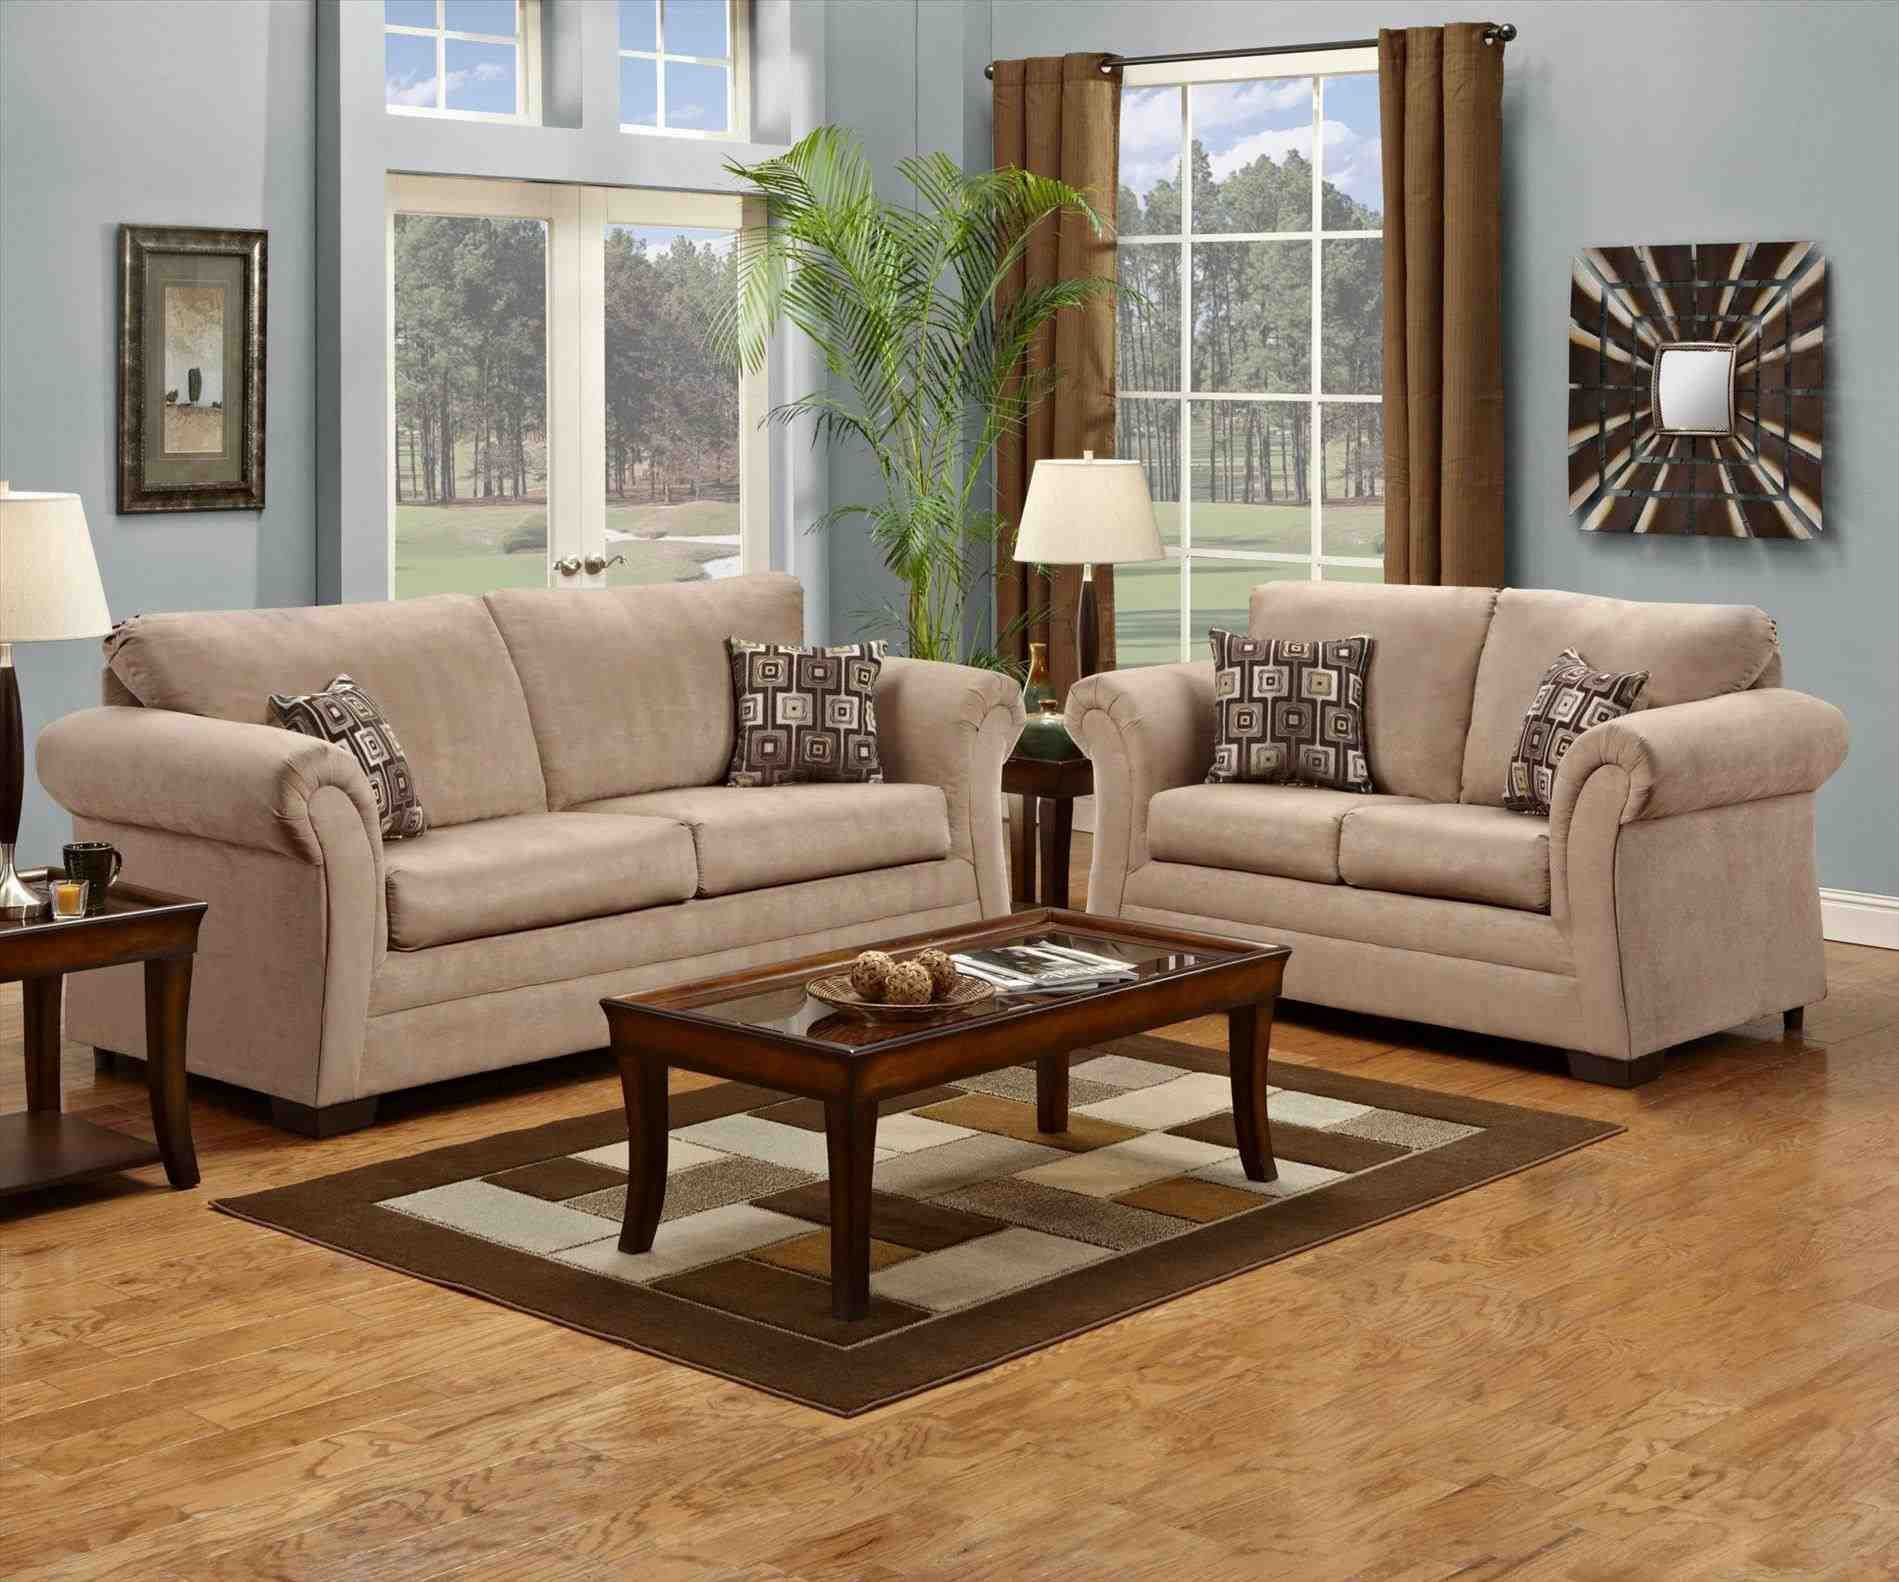 Cheap Sofa And Loveseat Sets Living Room Sets Furniture Sofa And Loveseat Set 4 Piece Living Room Set